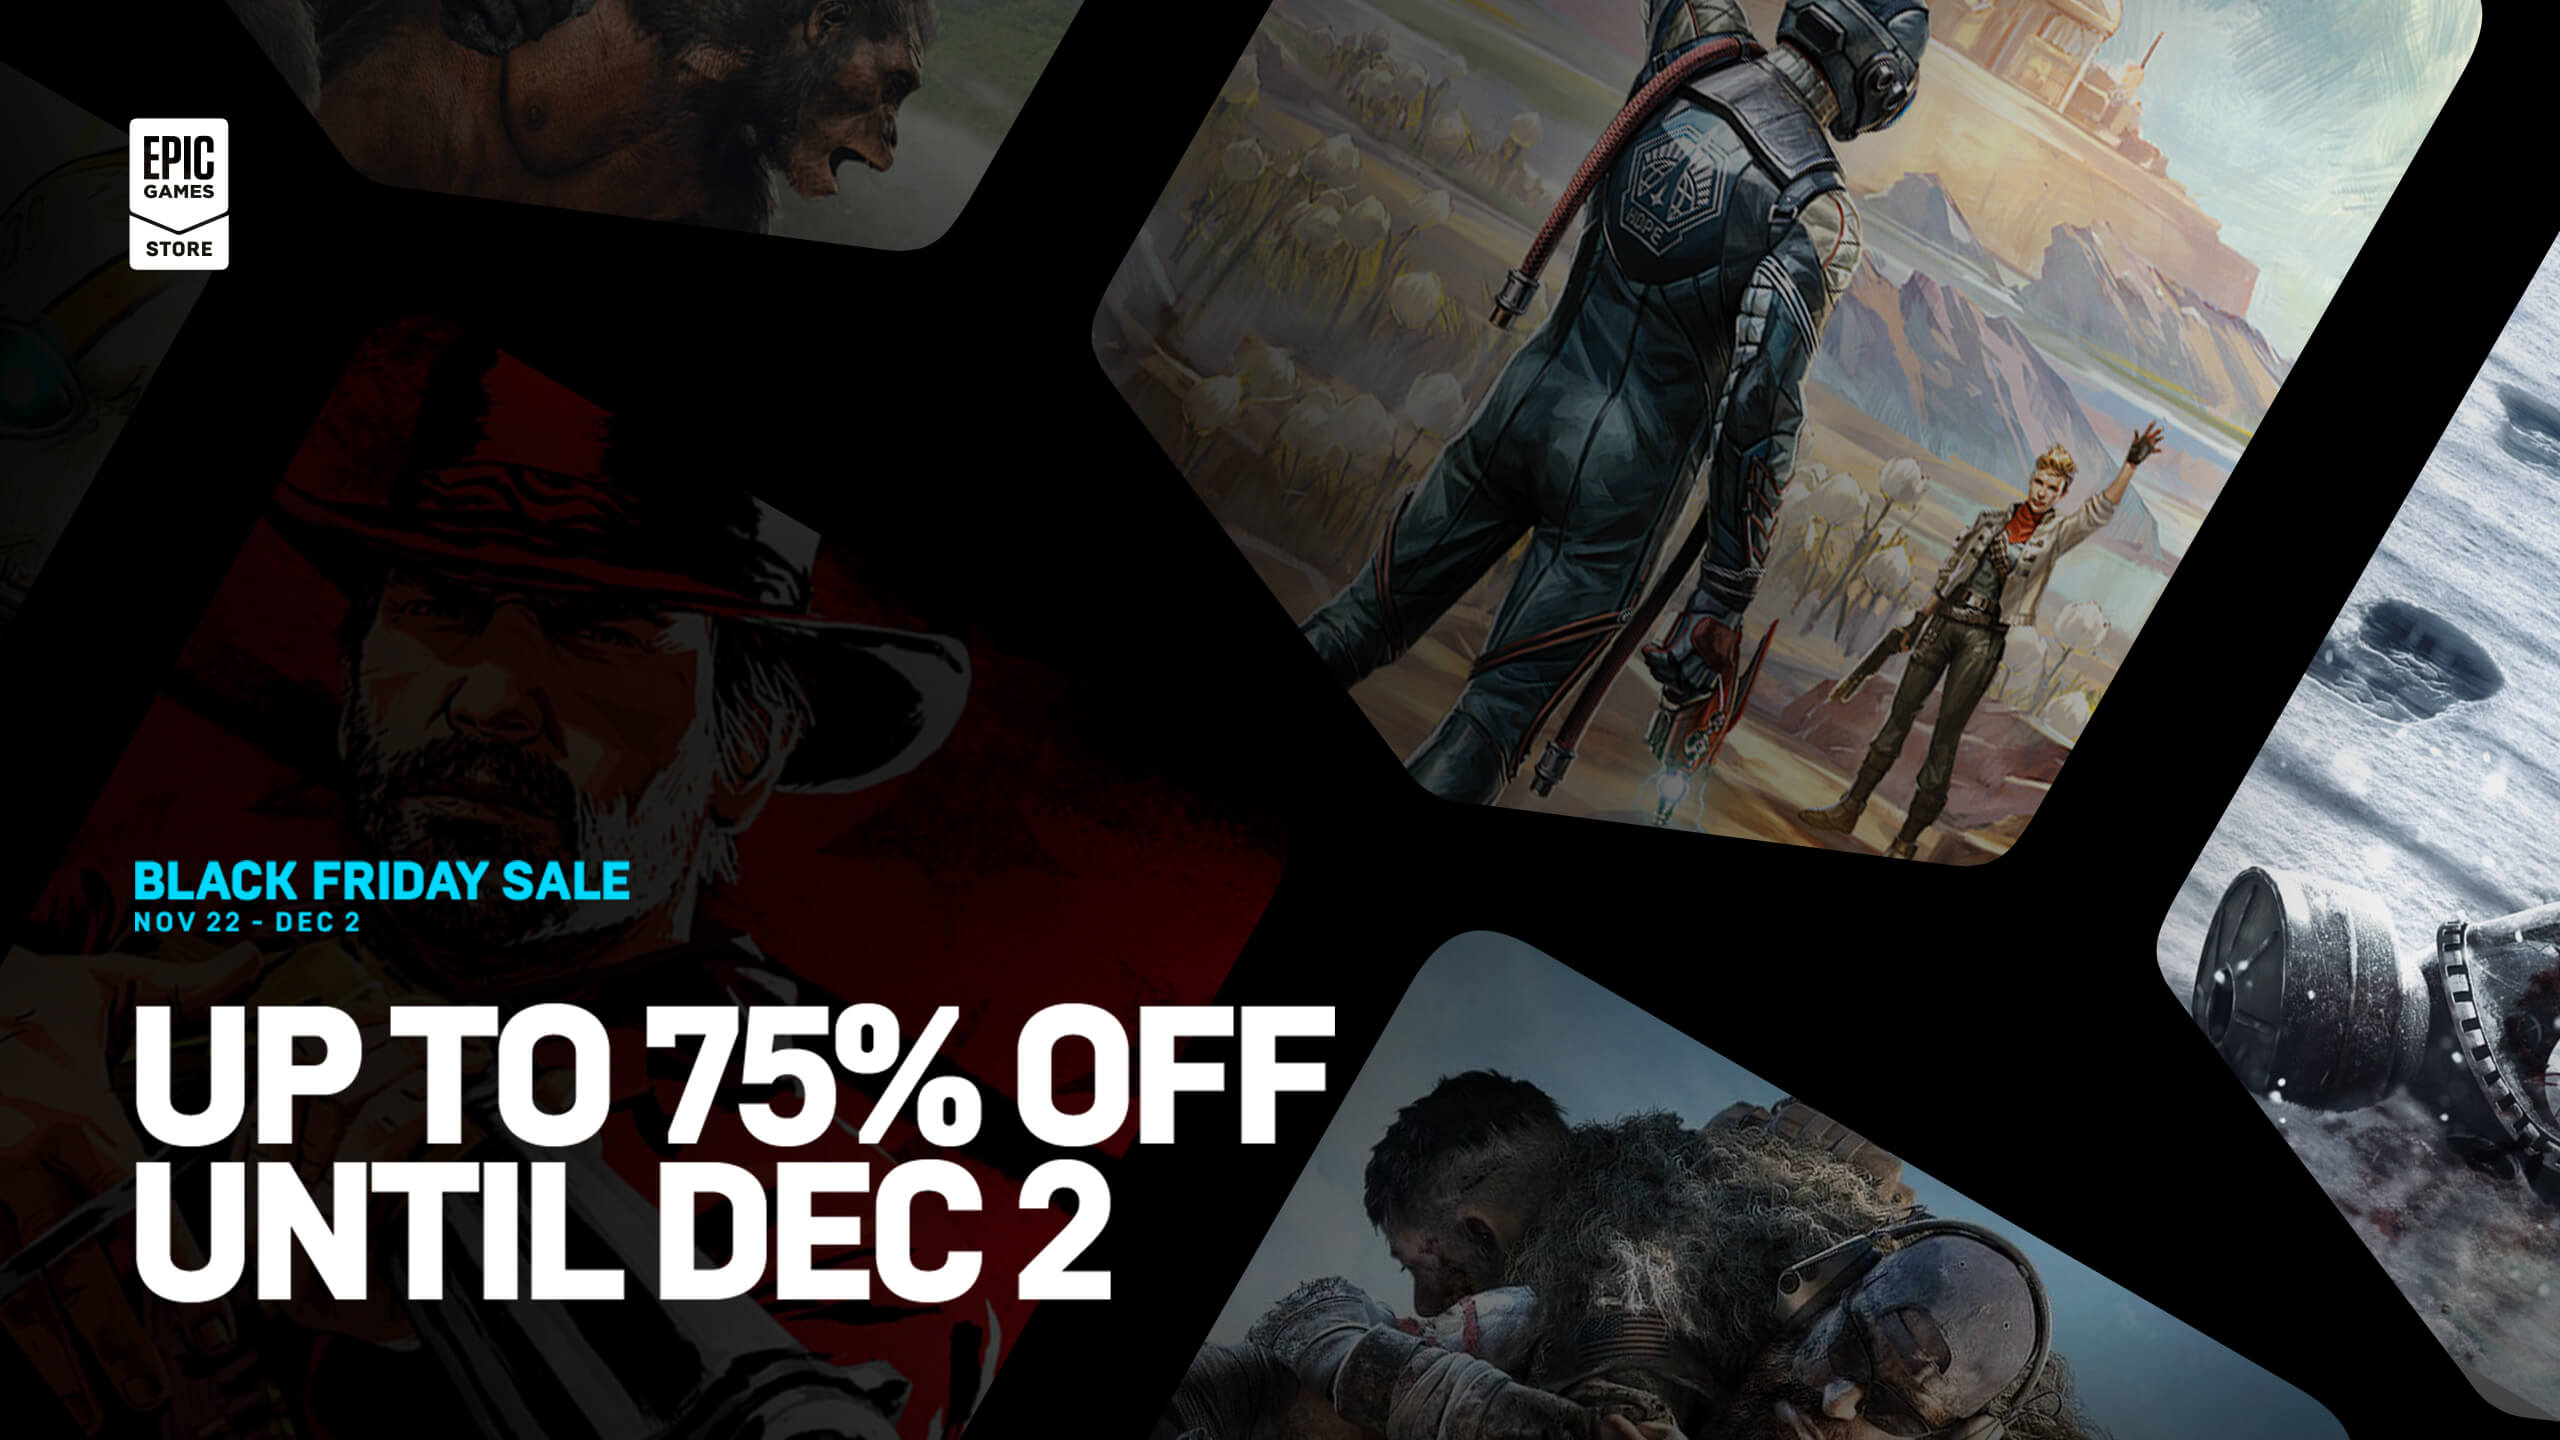 Save Big And Stock Up During The Epic Games Store Black Friday Sale